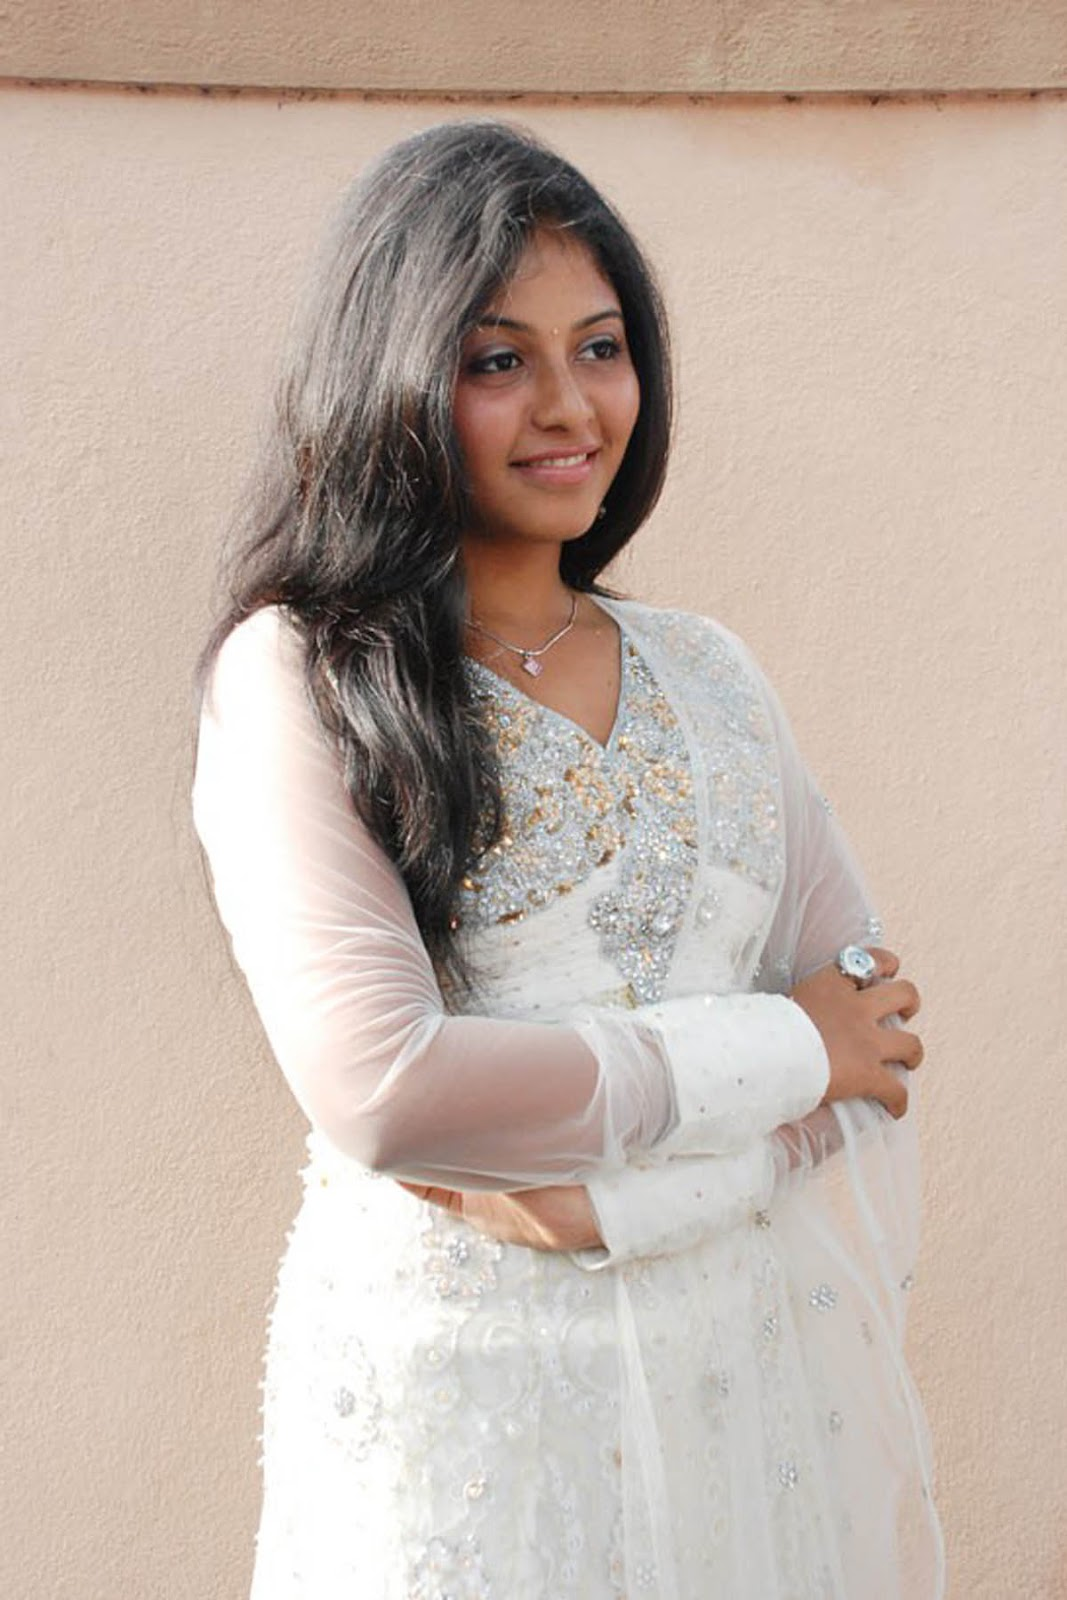 ... Pics, South Indian Actress Stills and Wallpapers, Tamil, Telugu, Ka